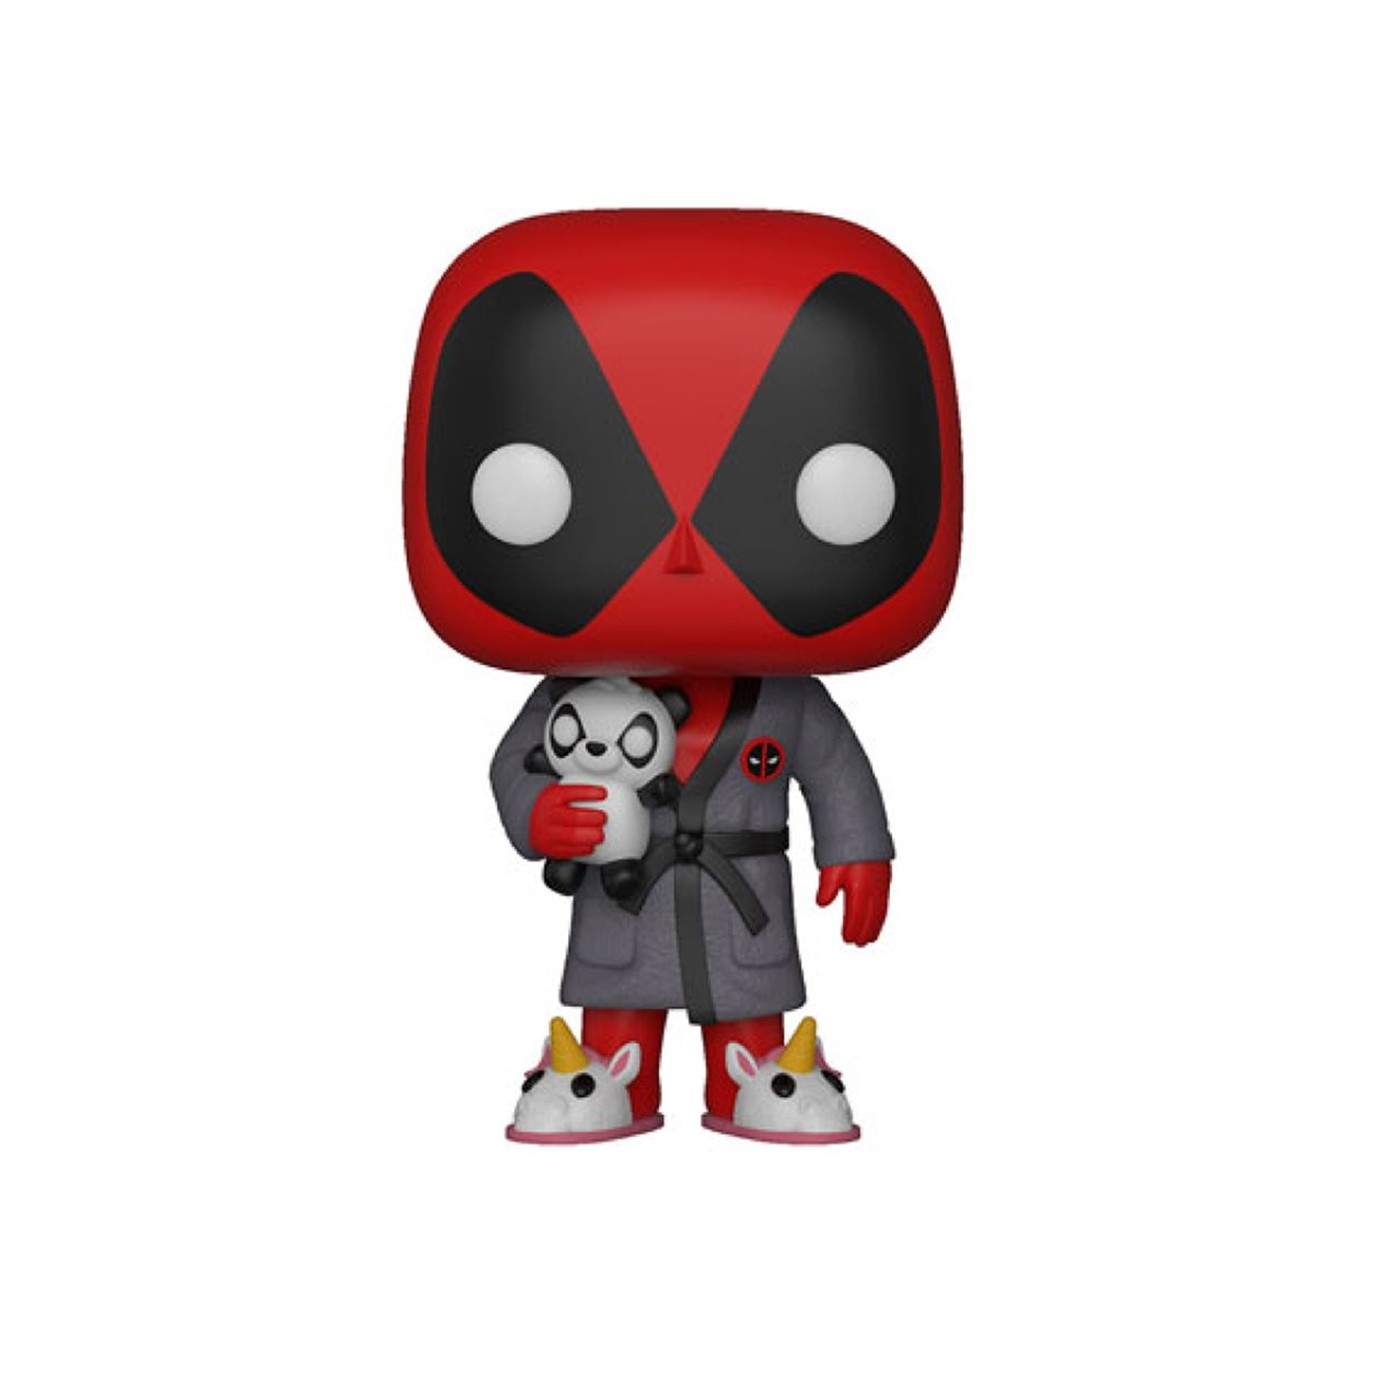 Deadpool in Robe Parody Funko Pop Vinyl Figure